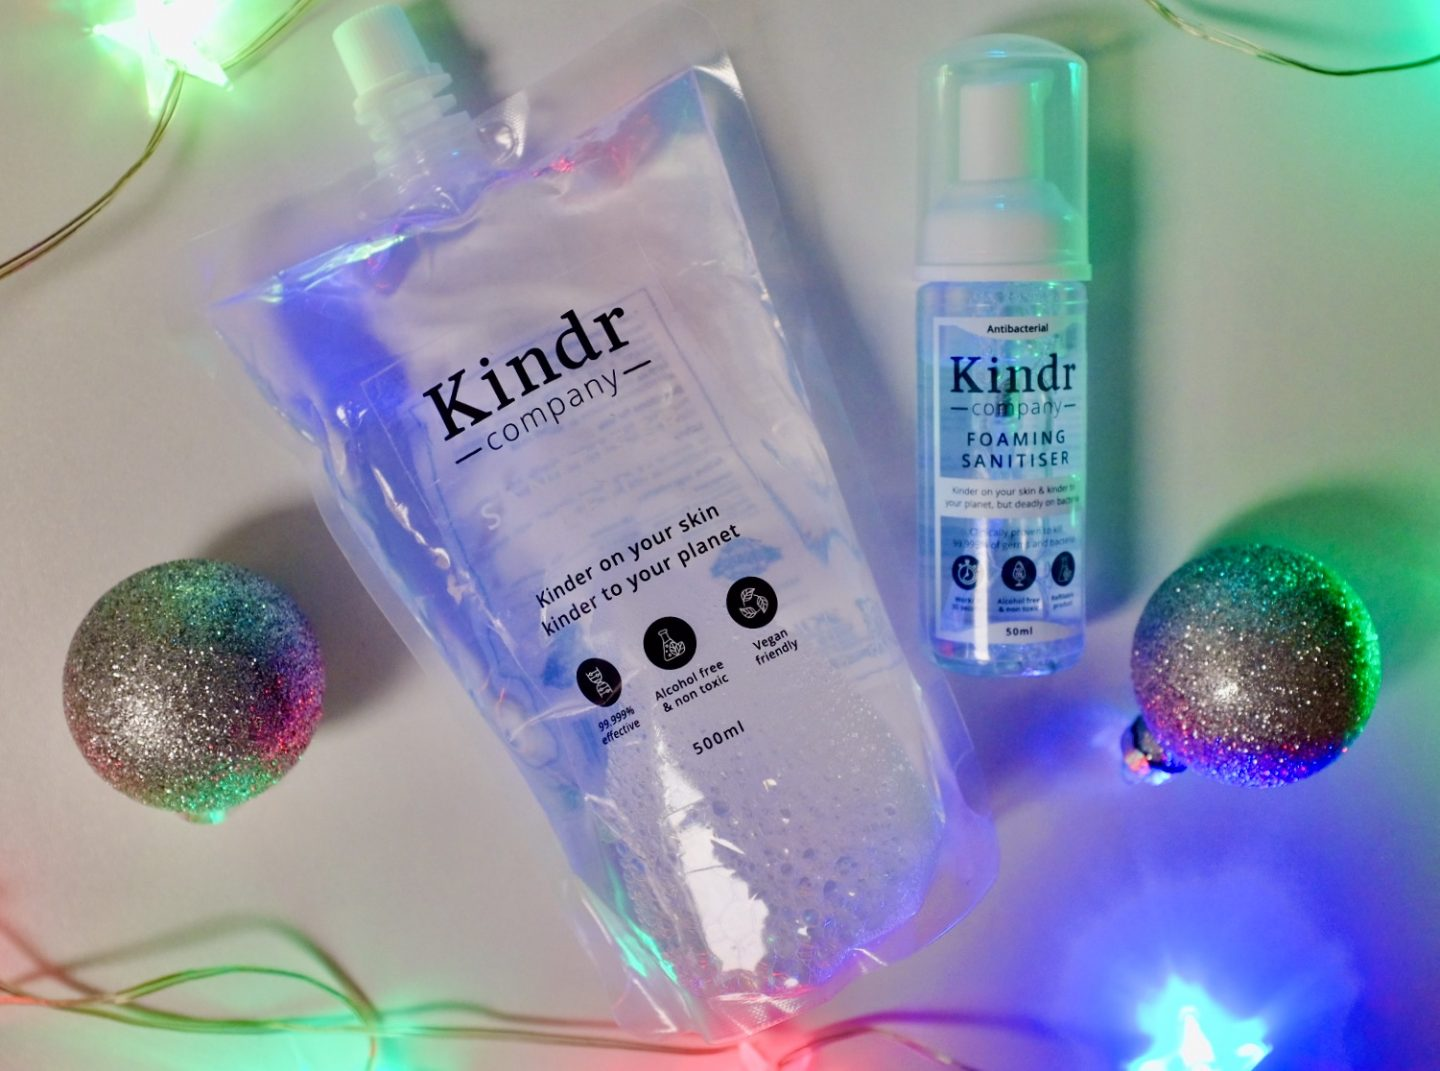 Hand Sanitiser from the Kindr Company